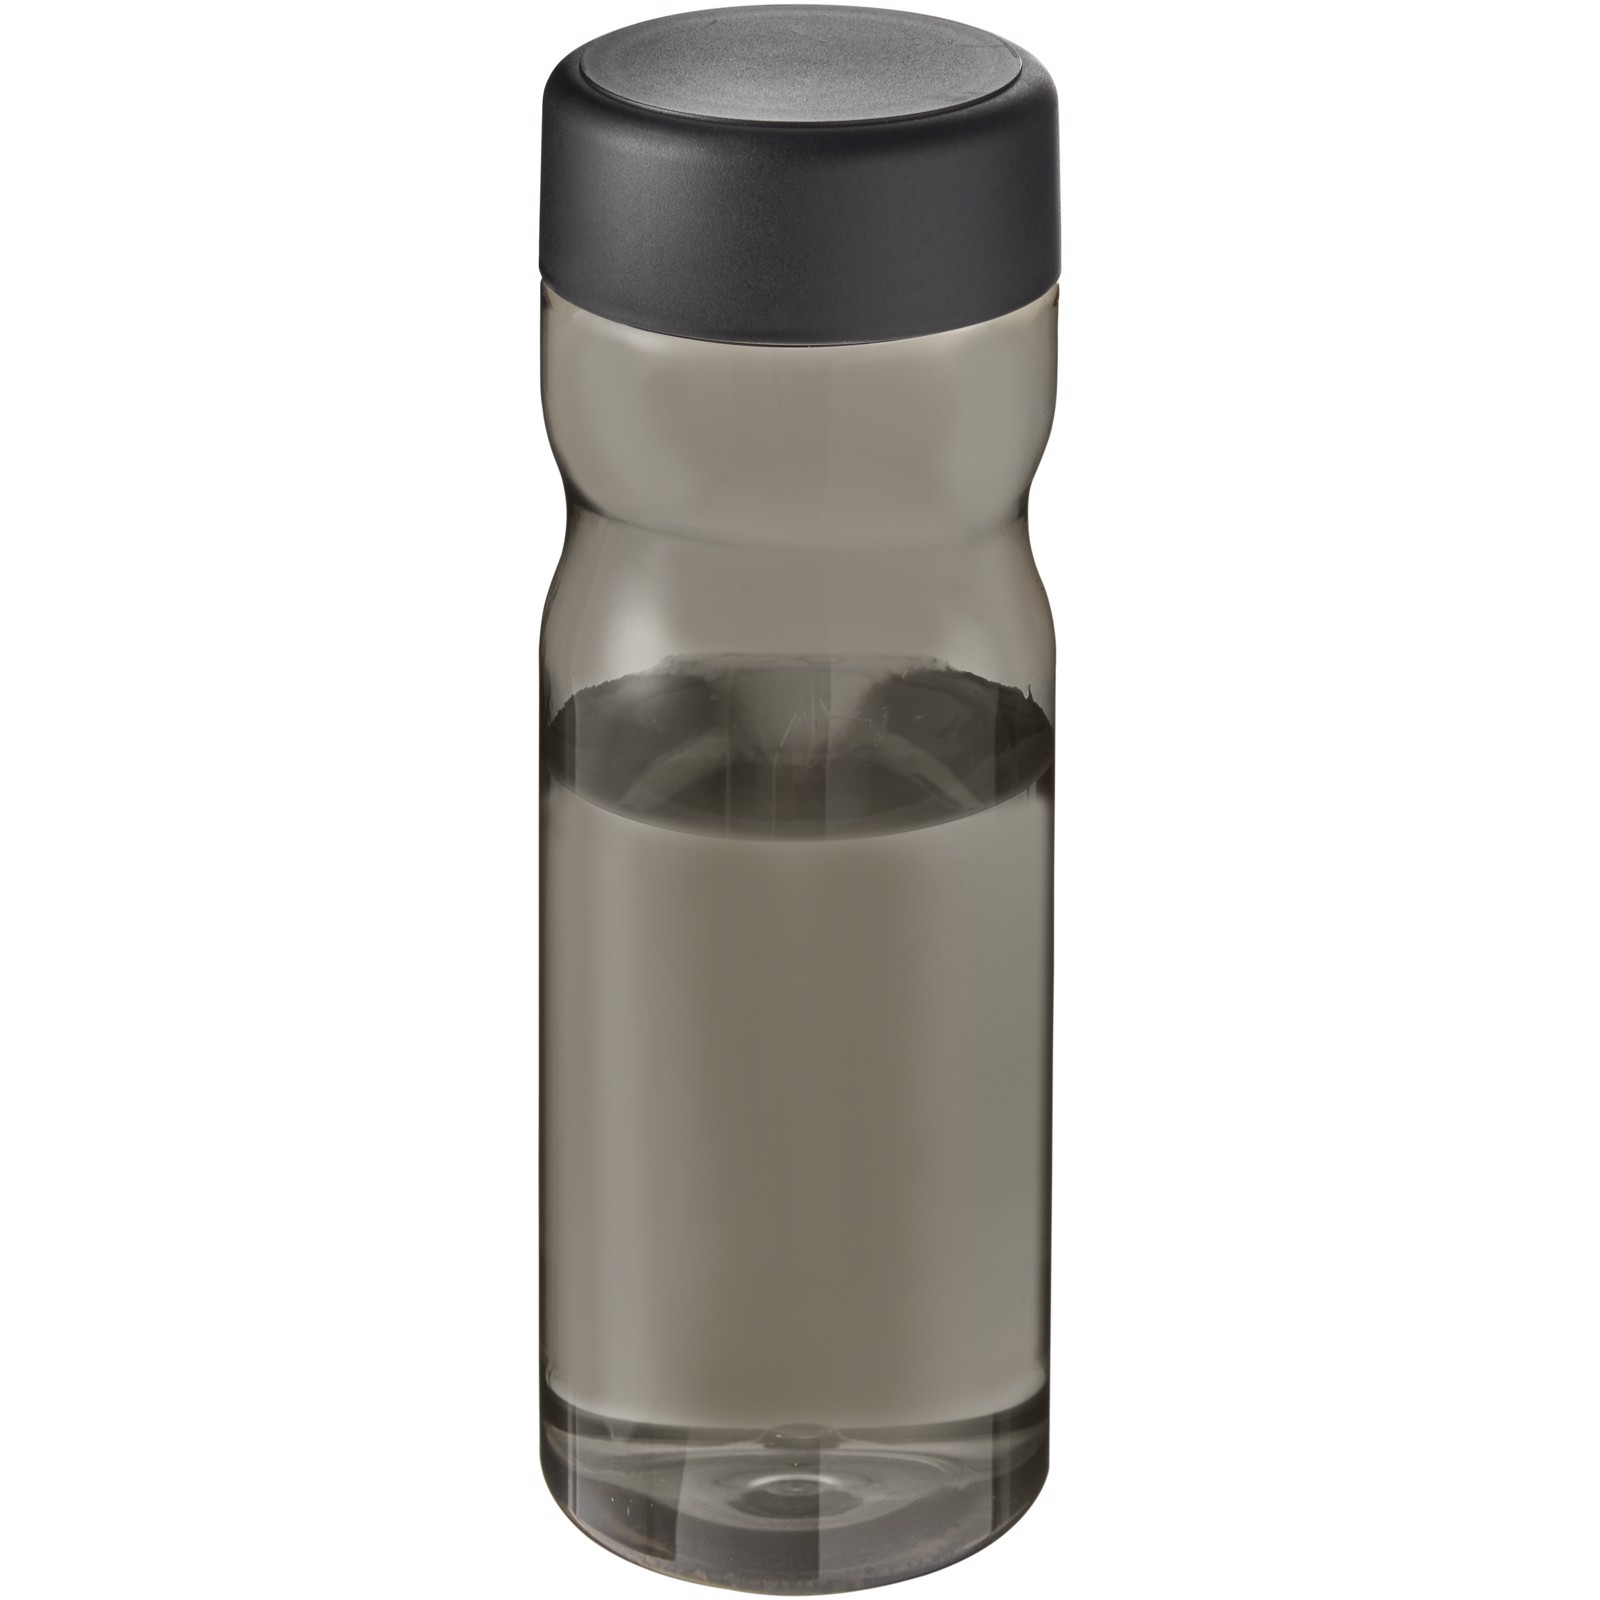 H2O Eco Base 650 ml screw cap water bottle - Charcoal / Solid Black